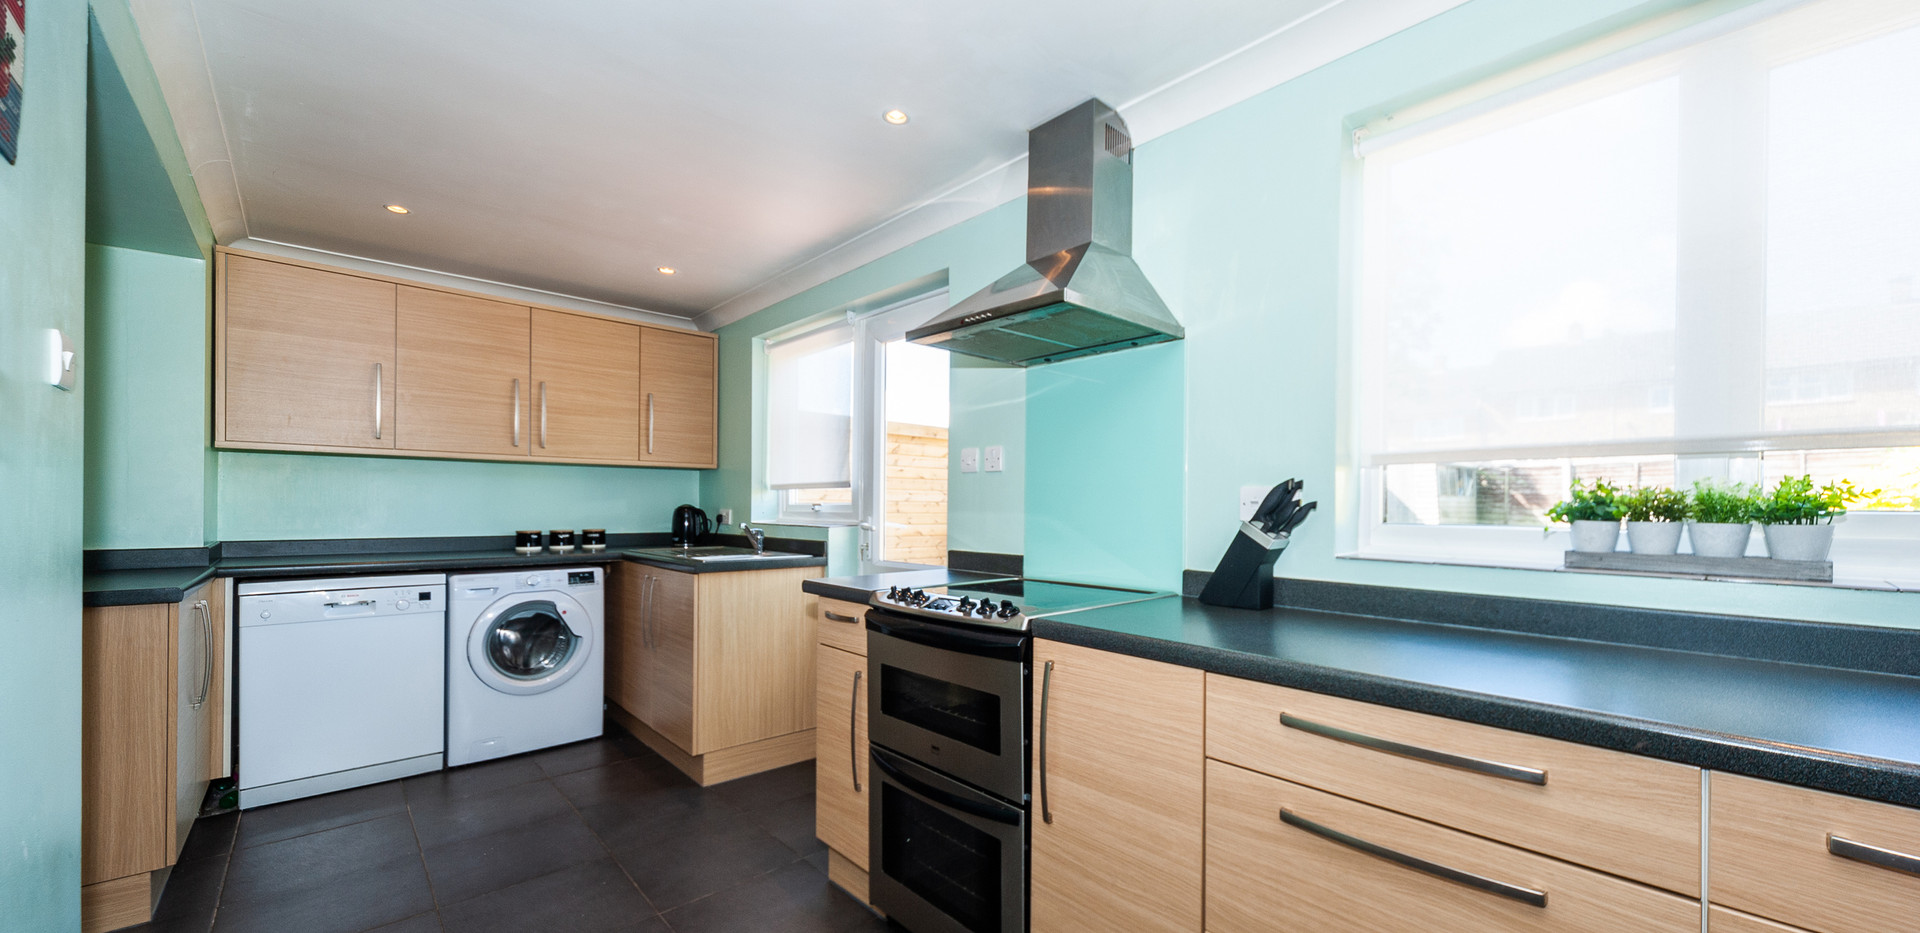 17-Collenswood-Rd-HIGH-RES-013.jpg